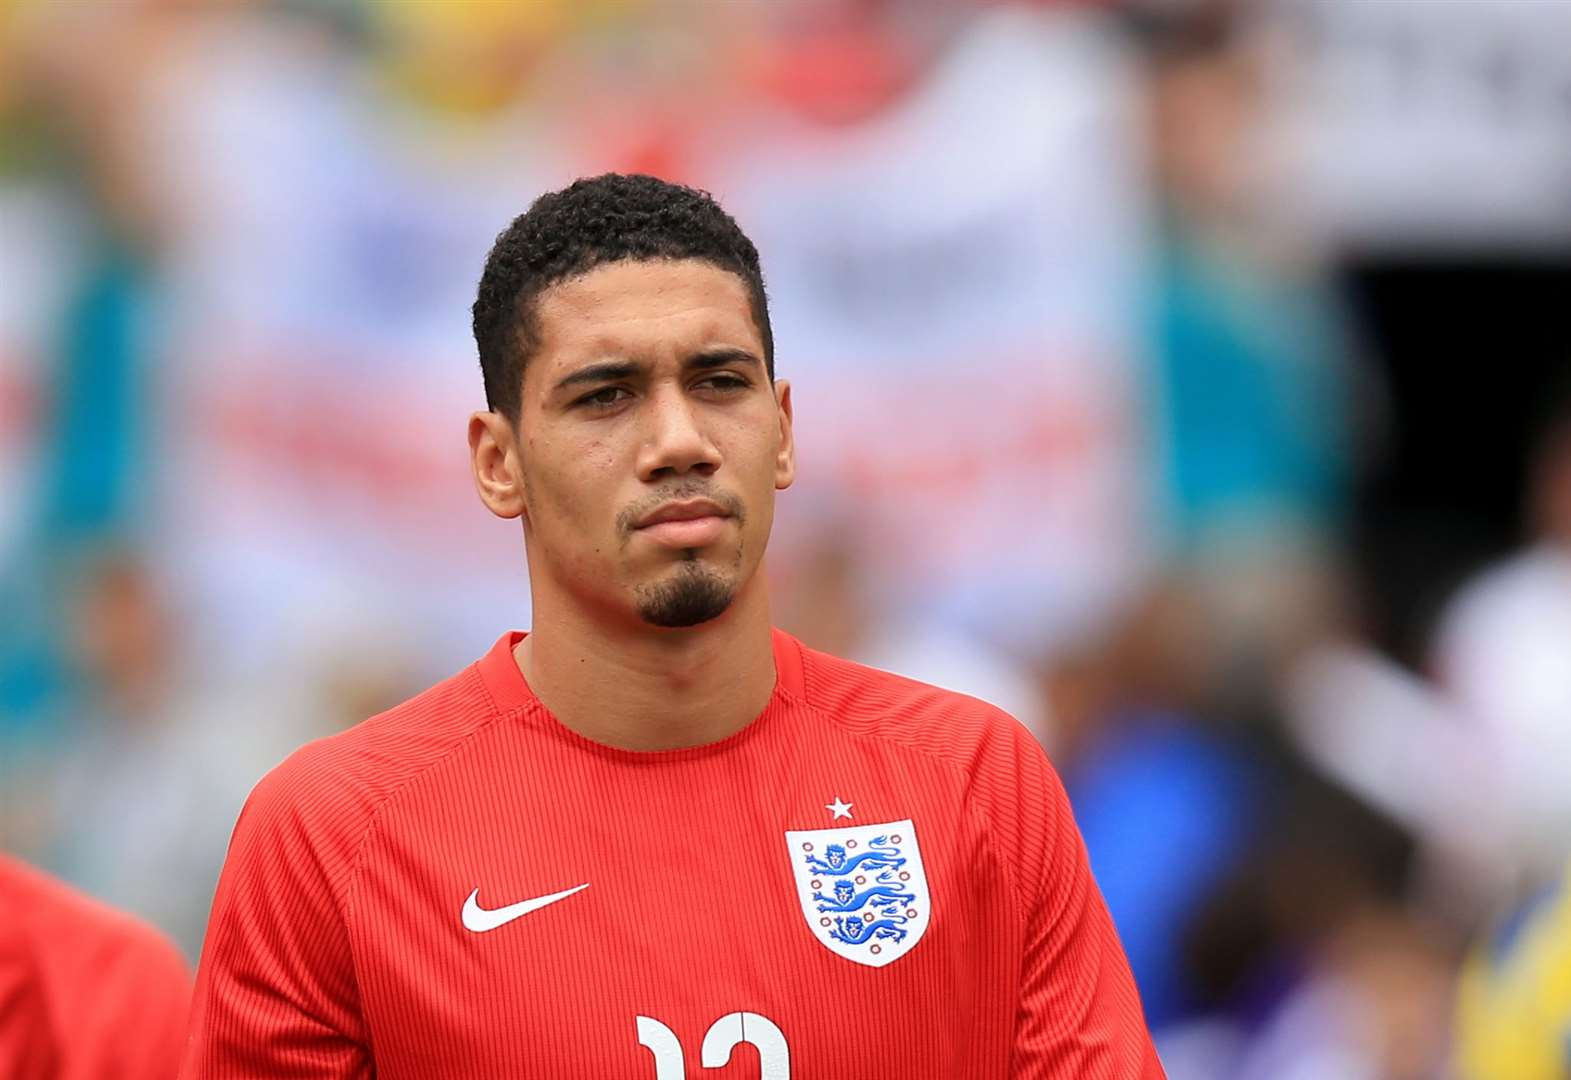 Chris Smalling robbed at gunpoint